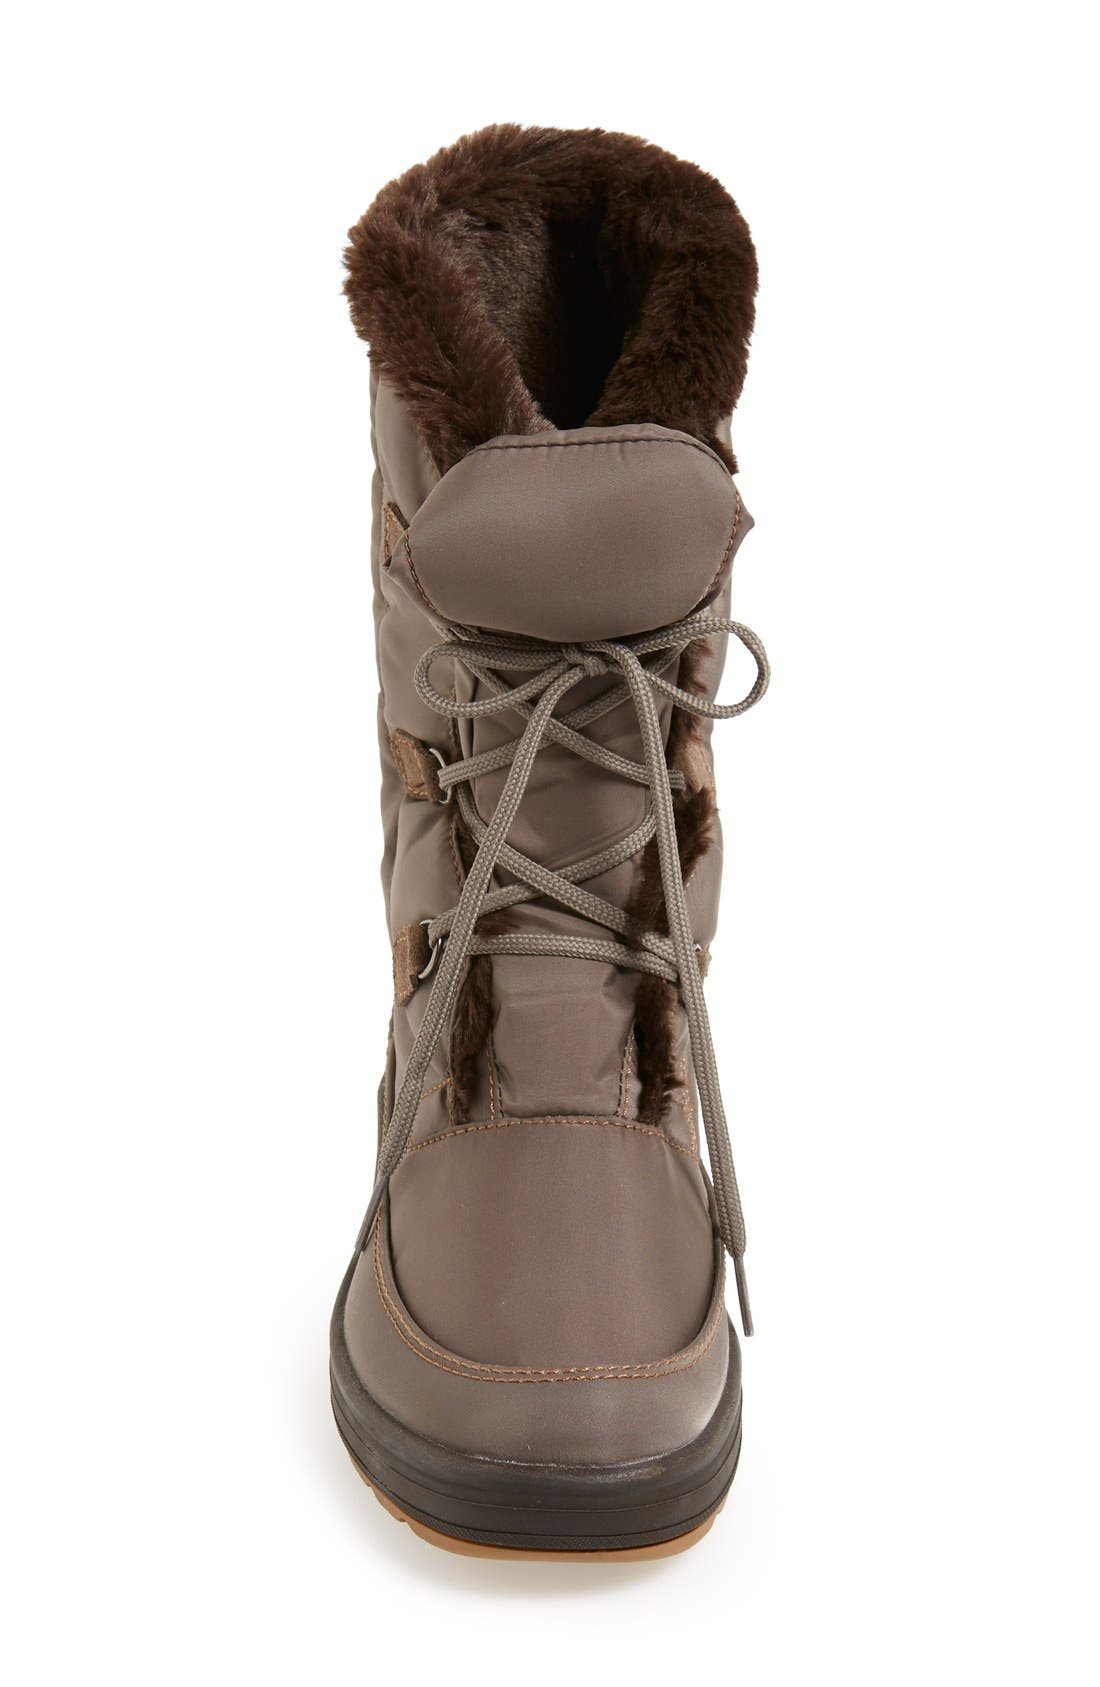 Alternate Image 3  - Pajar 'Marcie' Waterproof Snow Boot with Faux Fur Collar (Women)